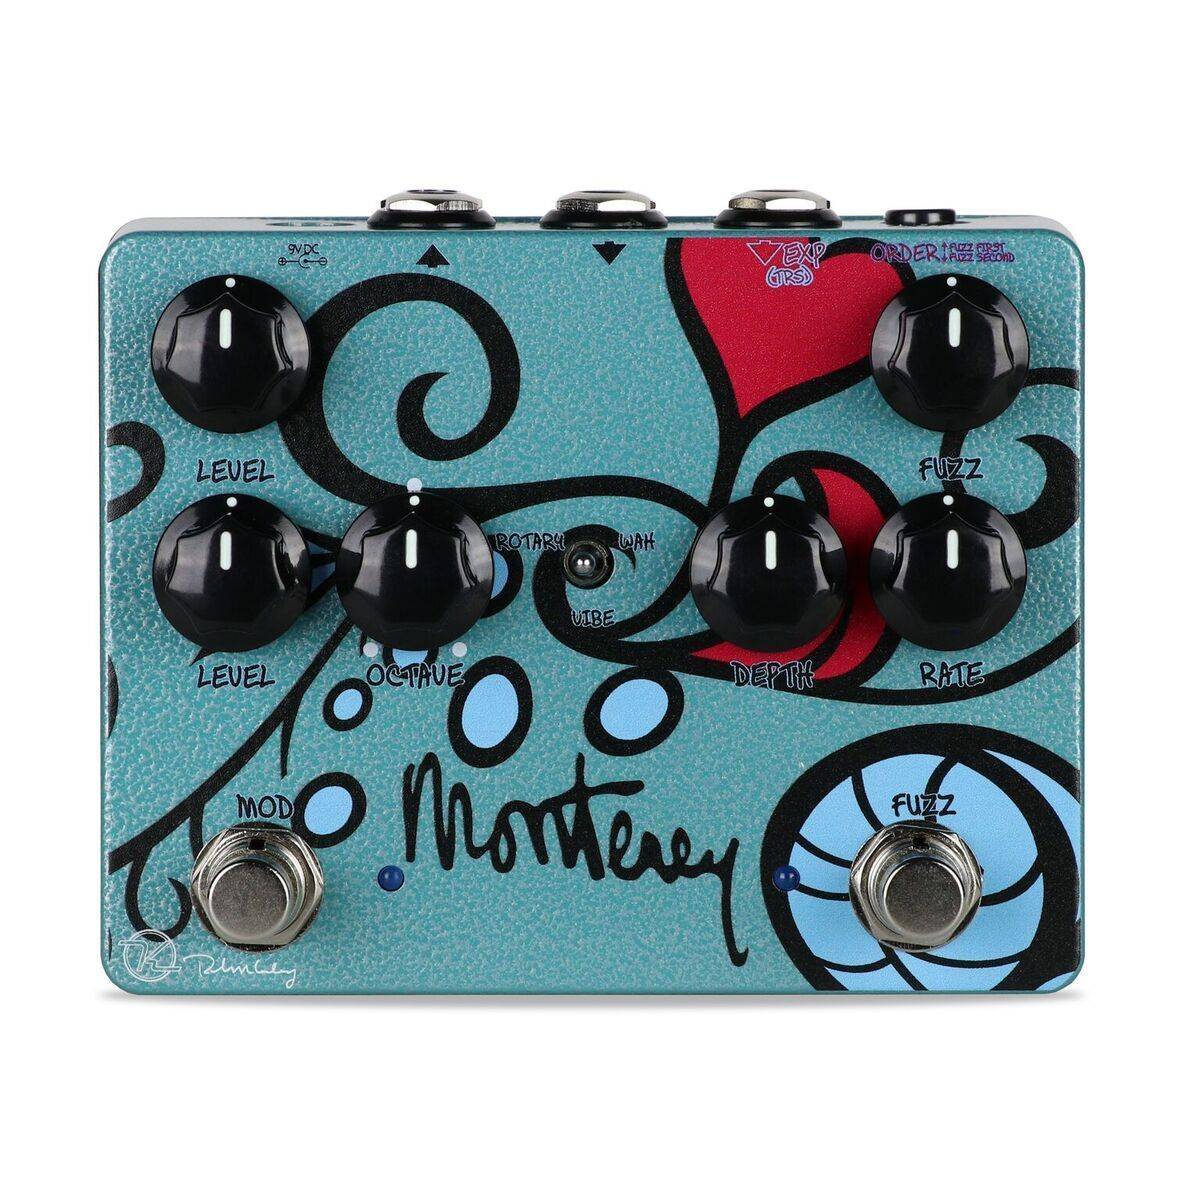 New Keeley Monterey Rotary Rotary Rotary Fuzz Vibe Guitar Effects Pedal d5764b